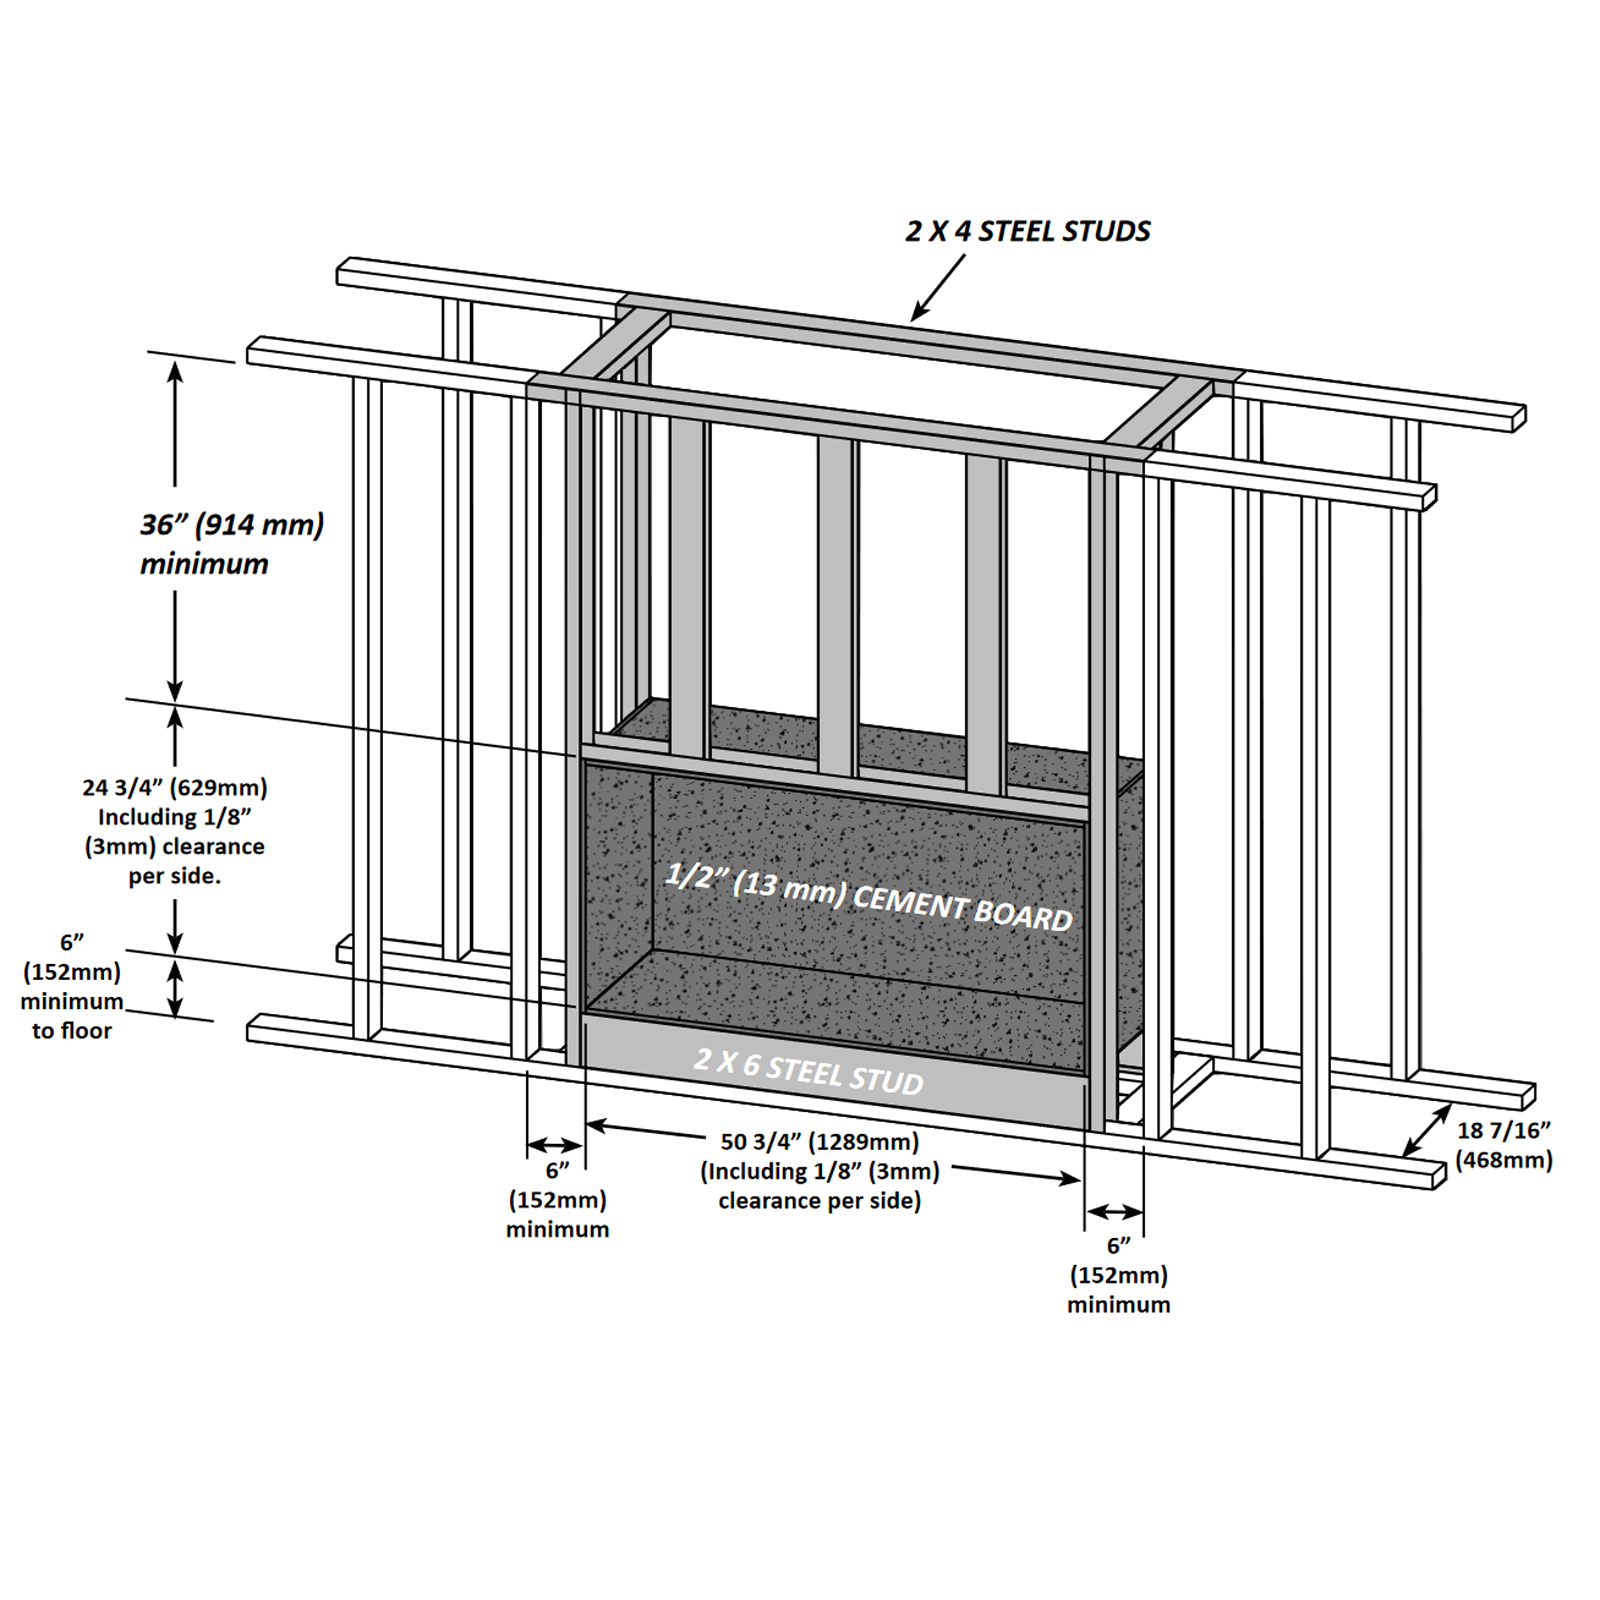 GSS48 Technical Drawing 2